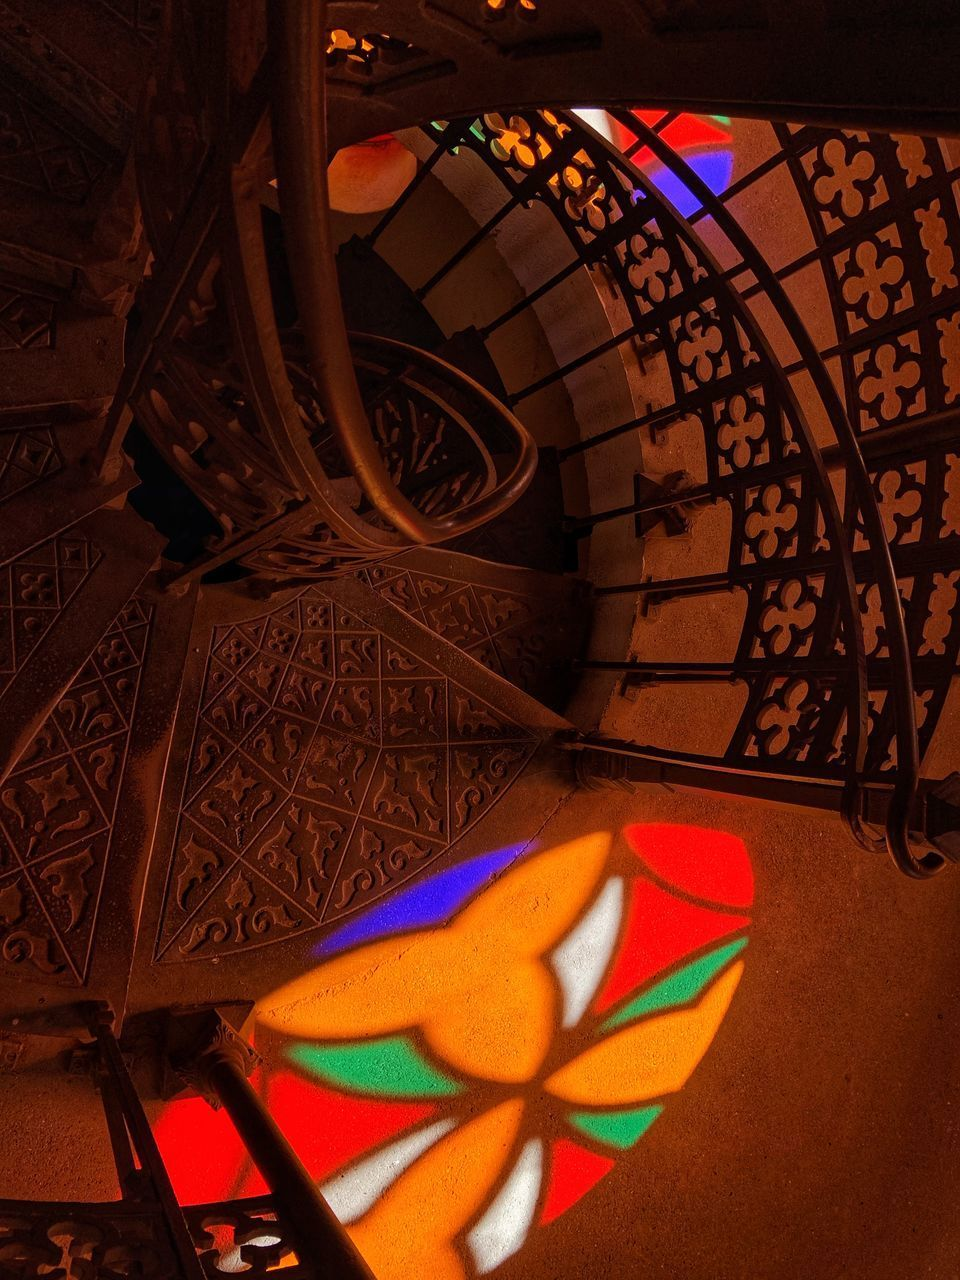 multi colored, architecture, art and craft, indoors, pattern, design, built structure, no people, creativity, staircase, close-up, spiral, craft, steps and staircases, railing, illuminated, metal, focus on foreground, high angle view, floral pattern, ornate